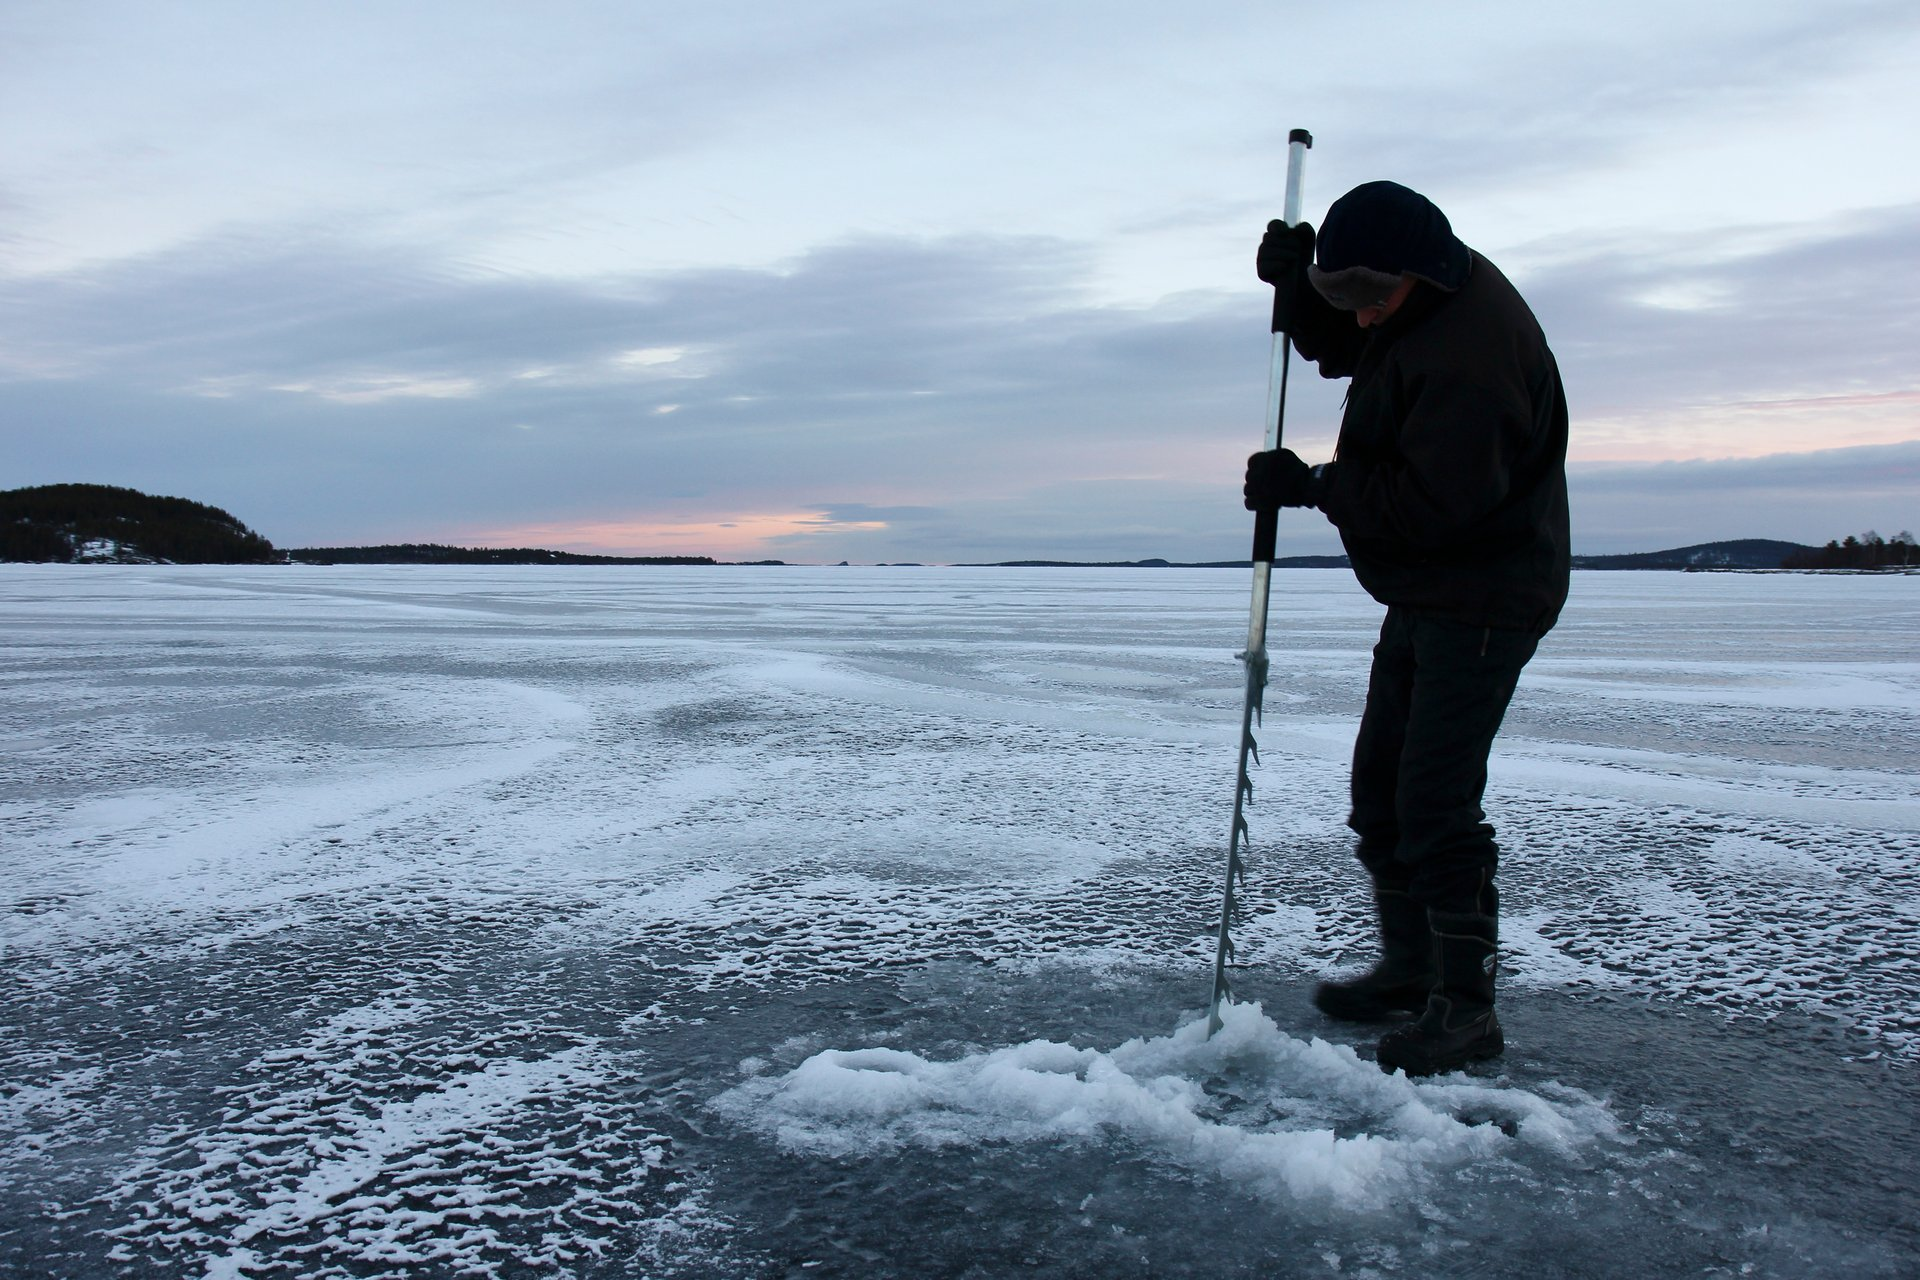 Best time to see Ice Fishing in Finland 2020